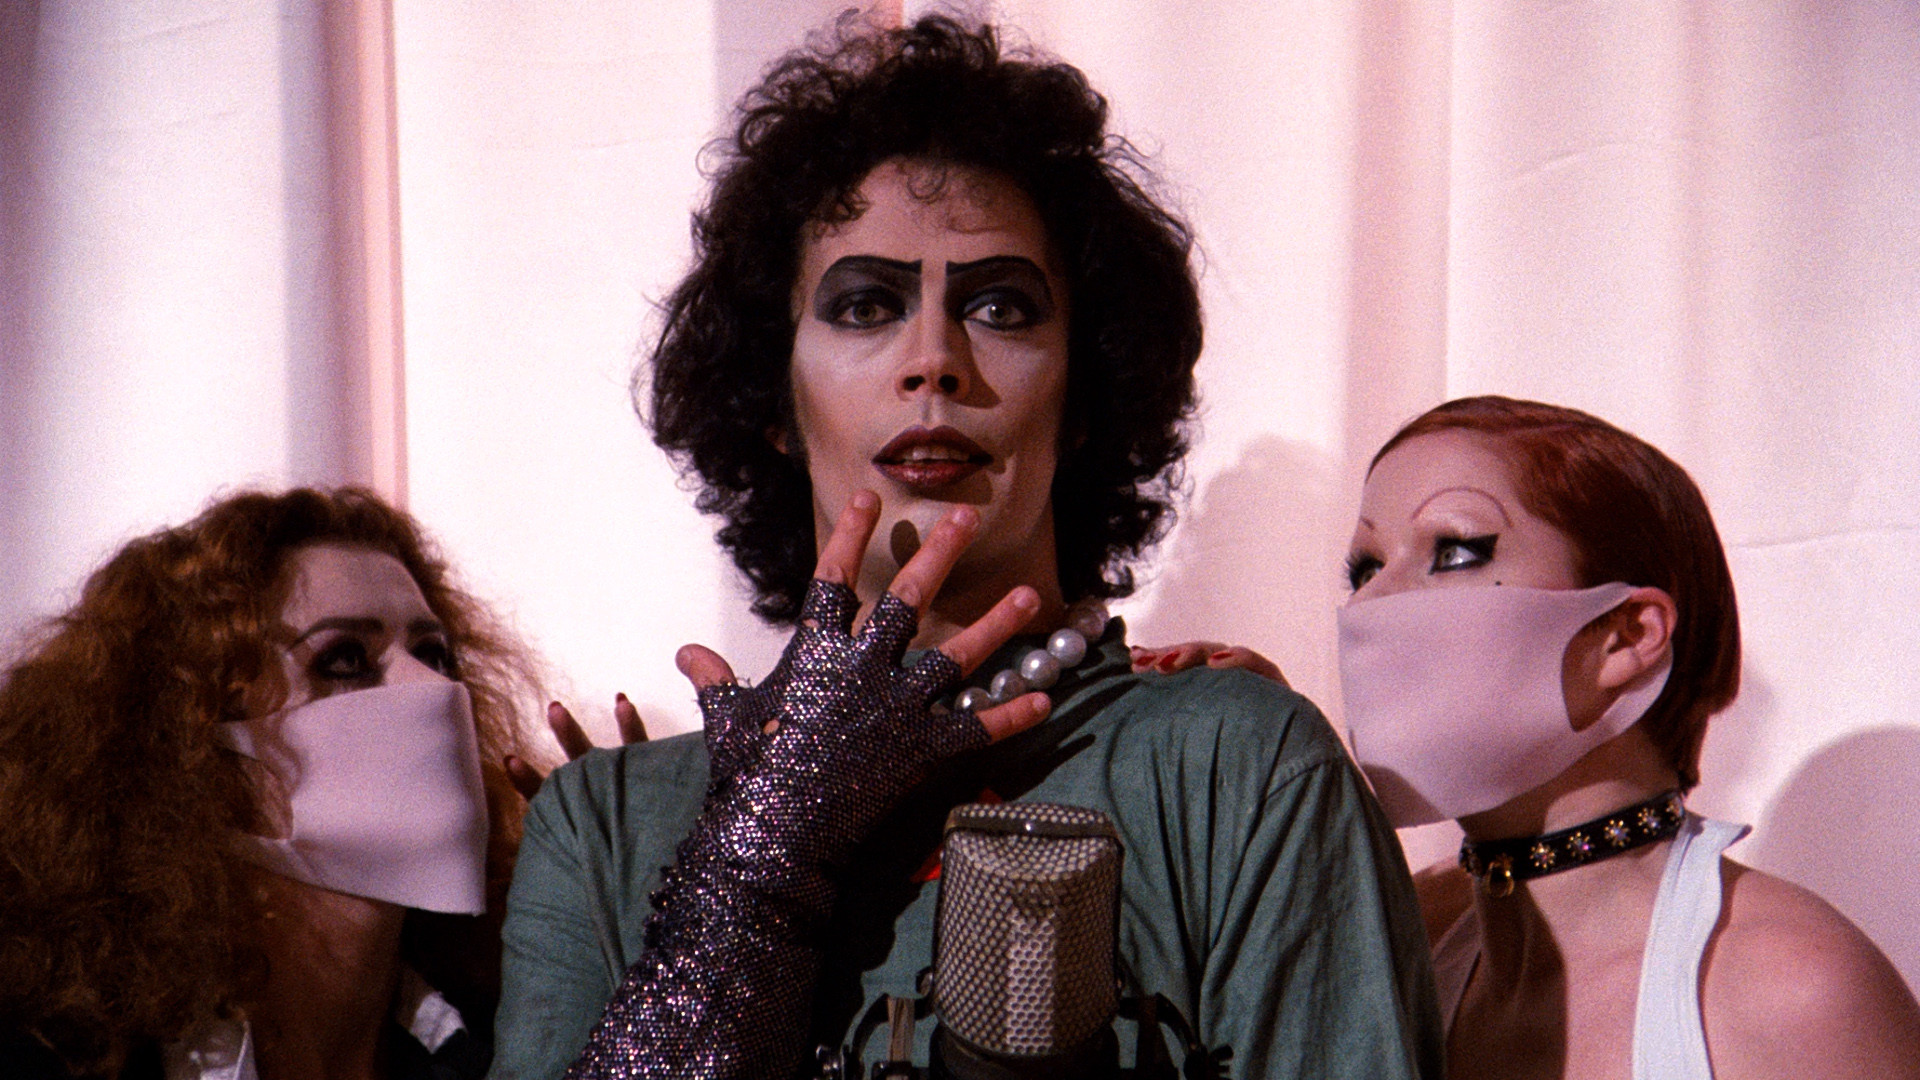 Frank N. Furter (Tim Curry) surrounded by Magenta (Patricia Quinn) and Columbia (Nell Campbell) in surgical masks.